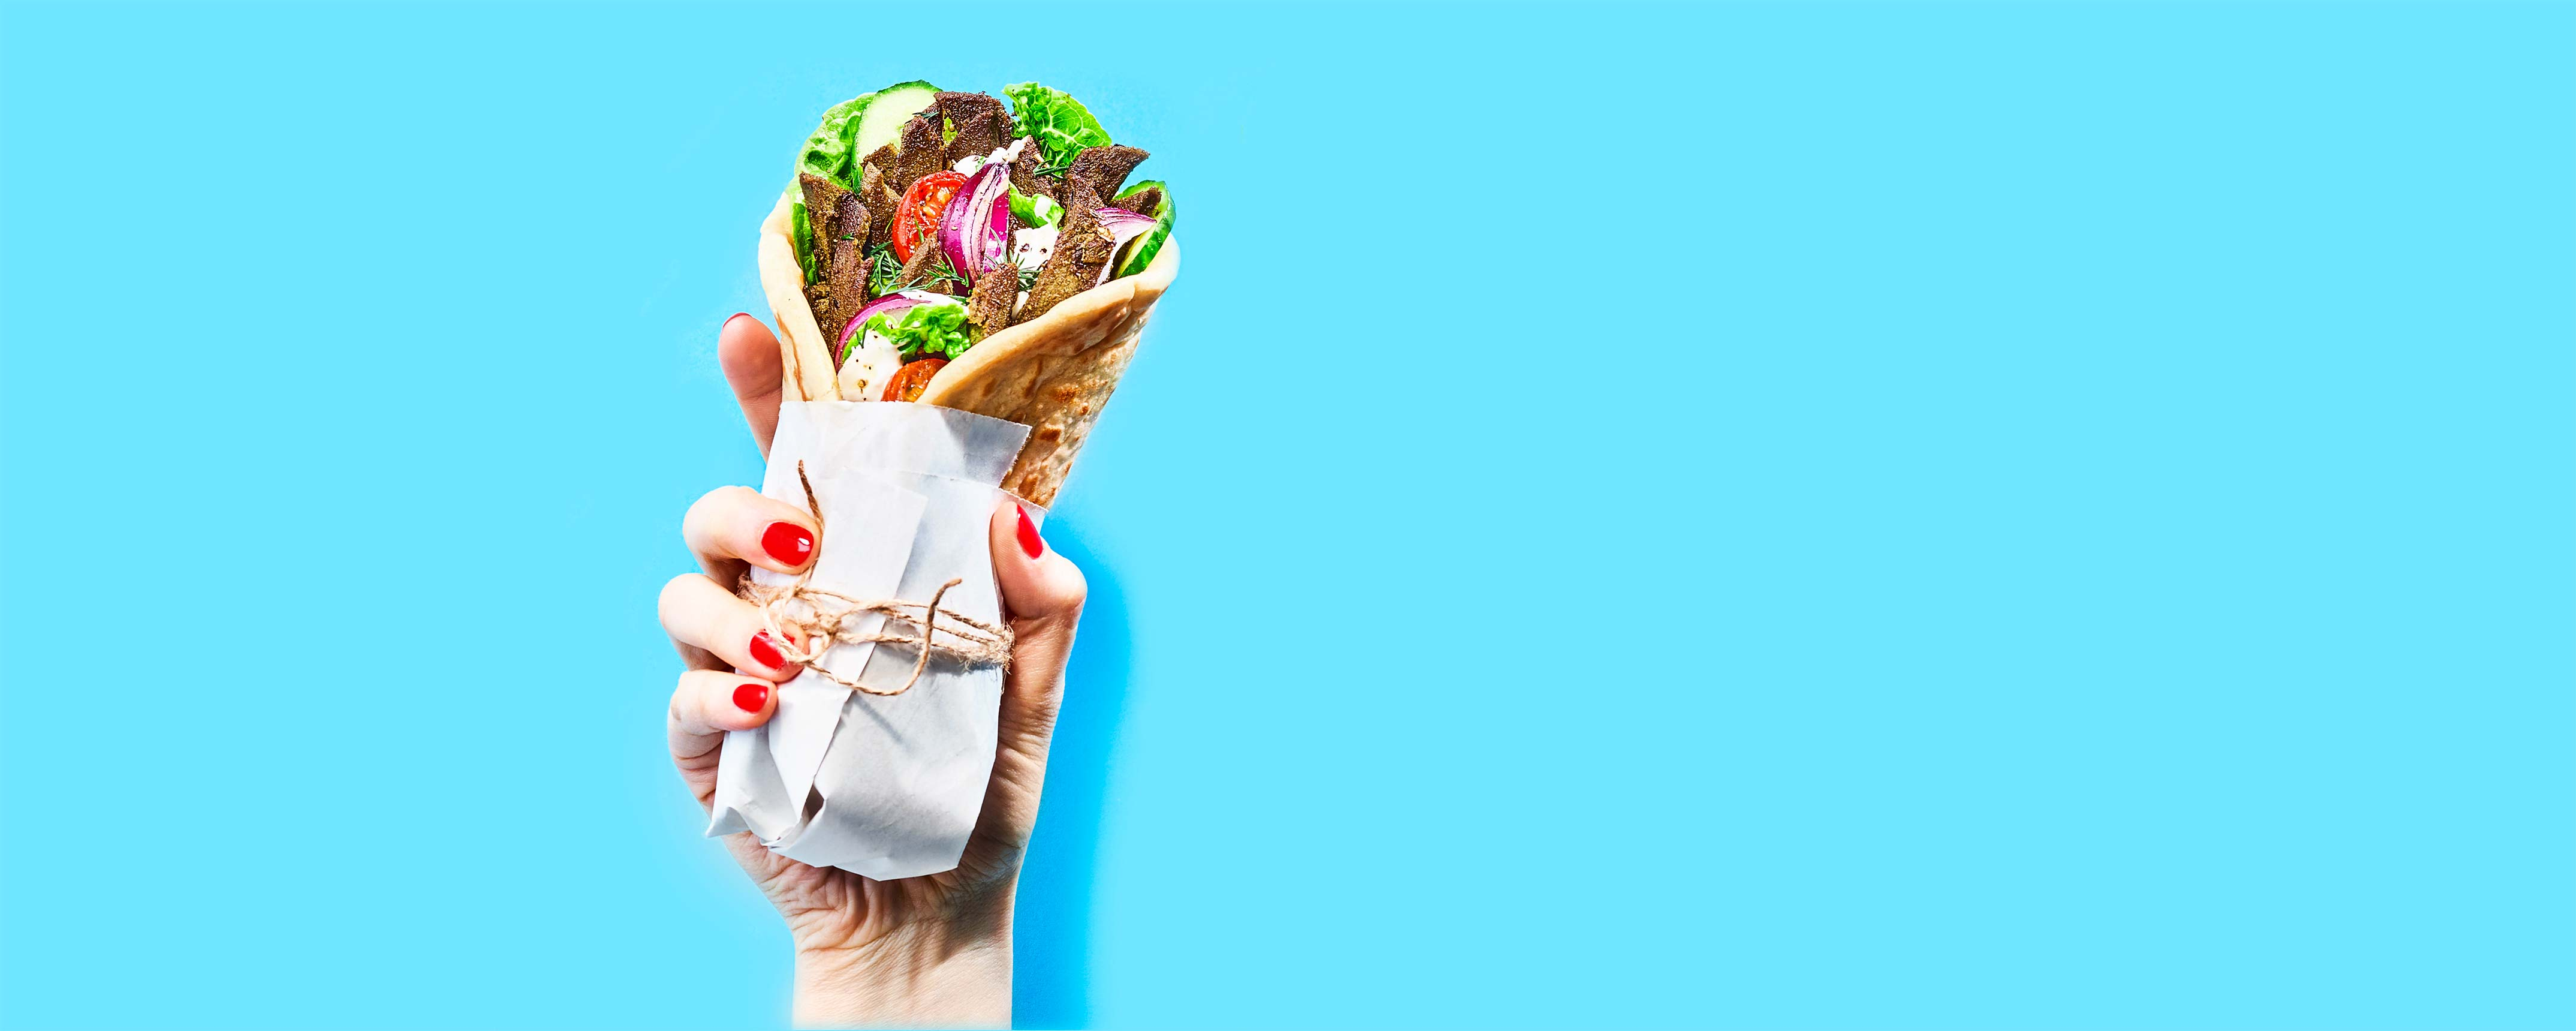 Woman's hand holding a vegeterian wrap food revolution blue Food commercial photography artificial light Philipp Burkart photographer in Hamburg